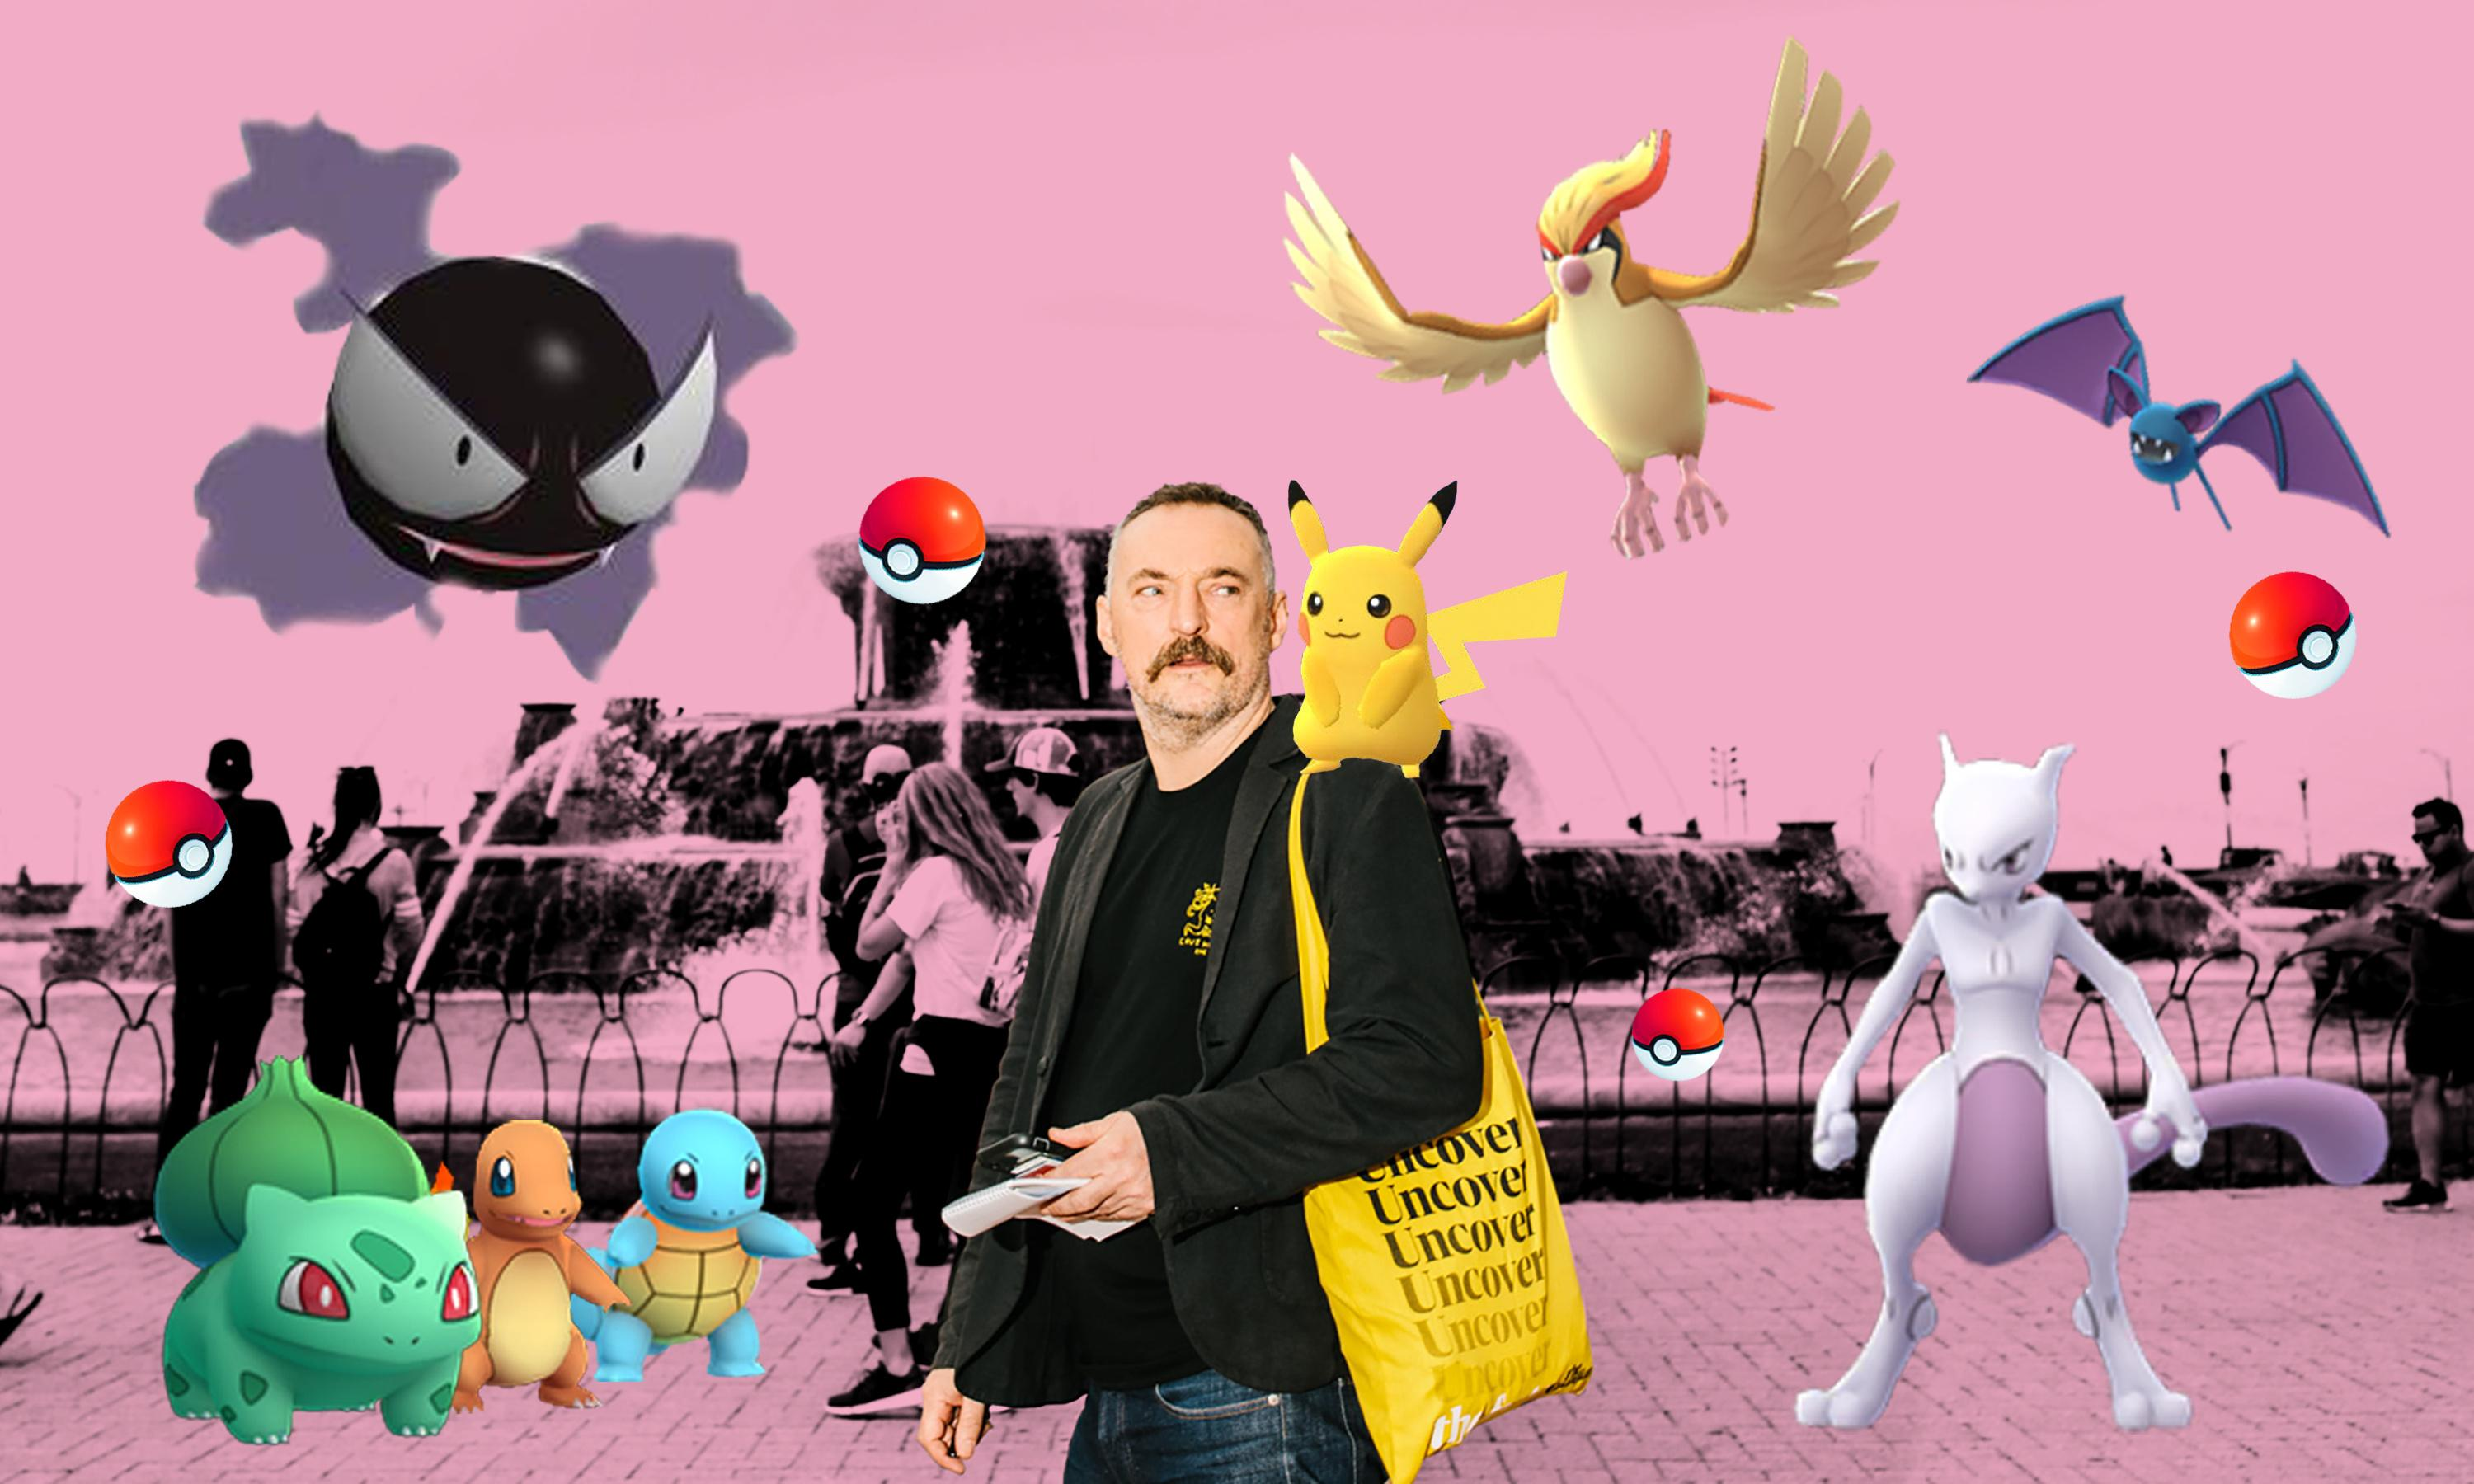 My secret shame: I am (still) addicted to Pokémon Go